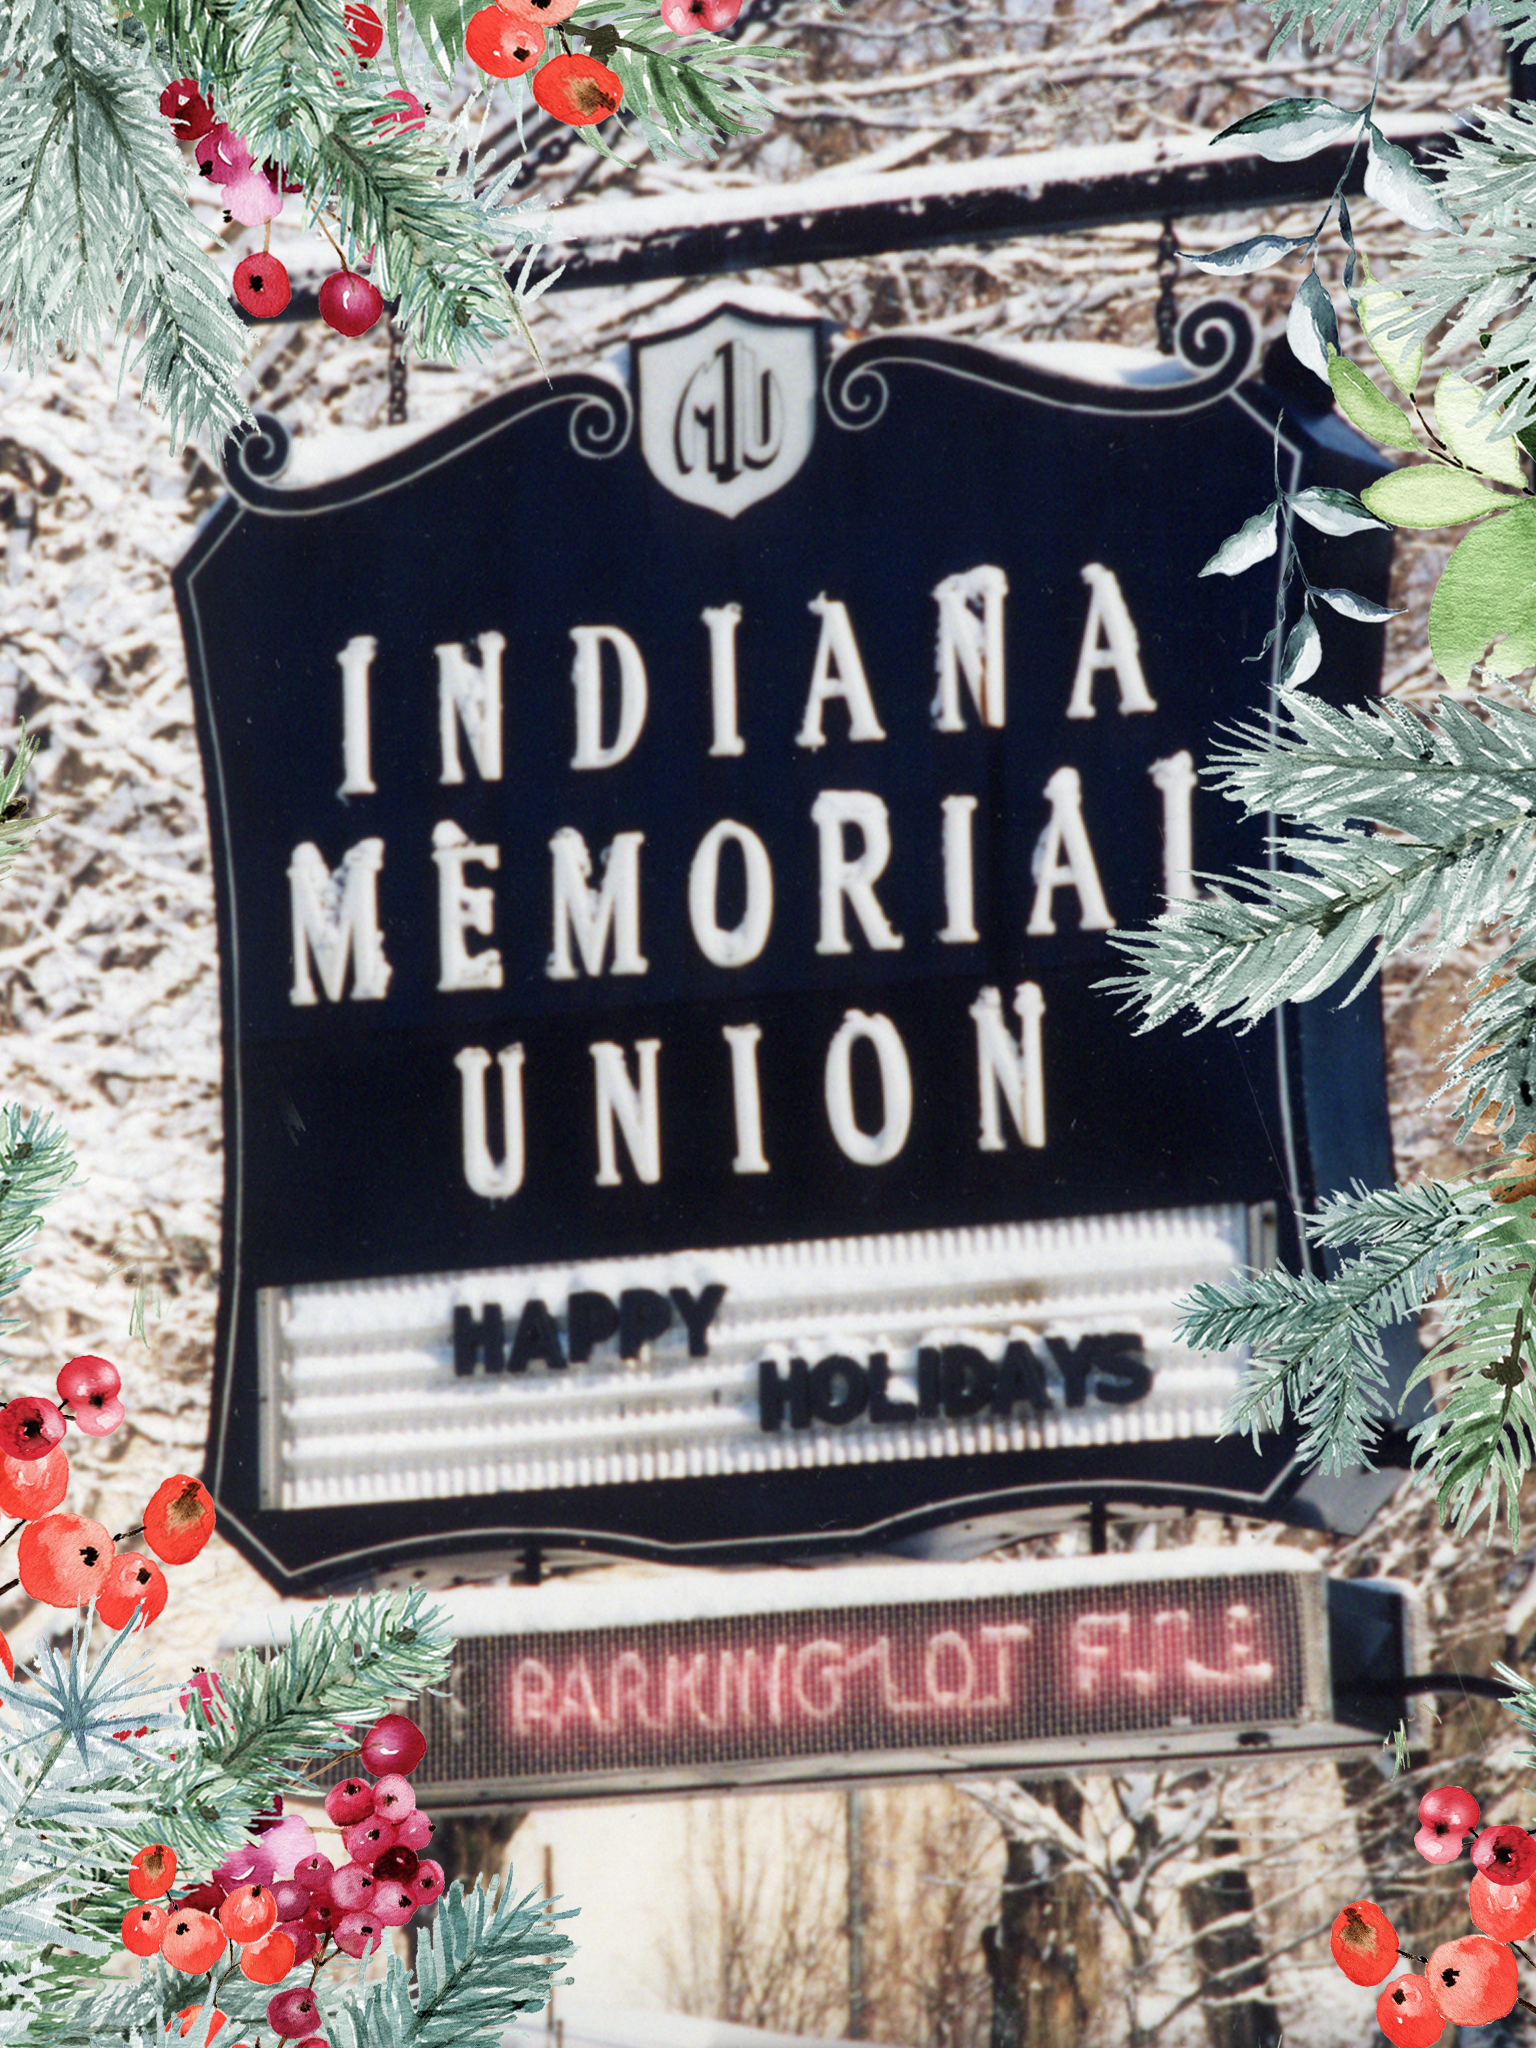 A festive frame is overlaid on a snowy image of a sign that reads Indiana Memorial Union